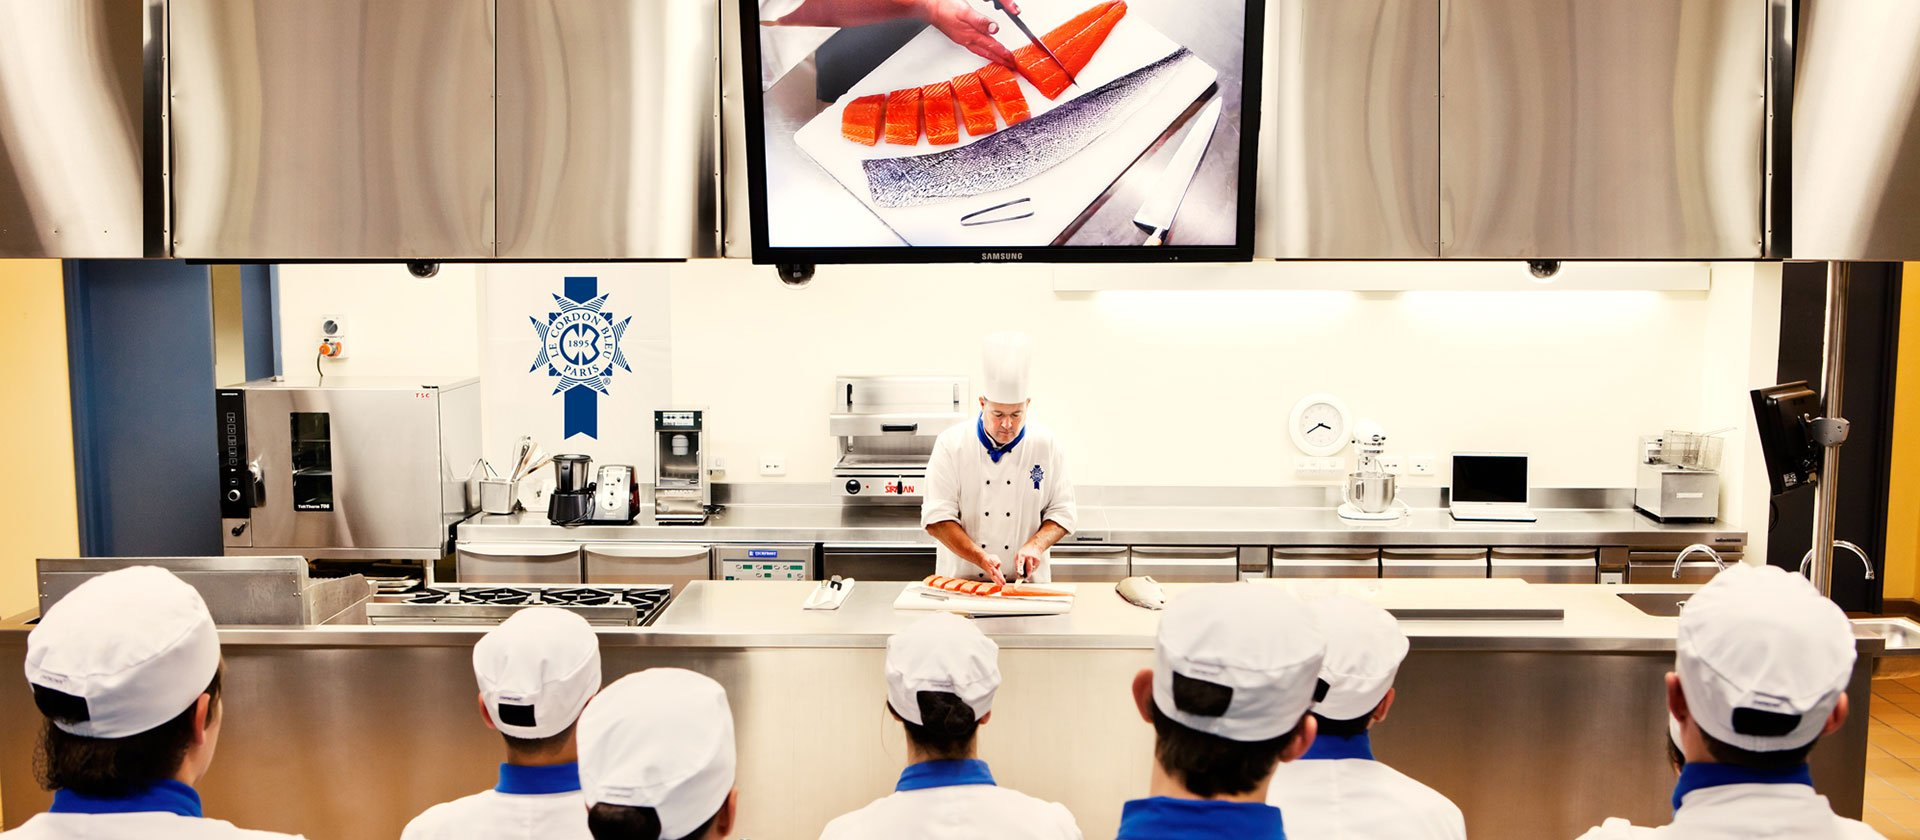 Le Cordon Bleu Australia demonstration kitchen